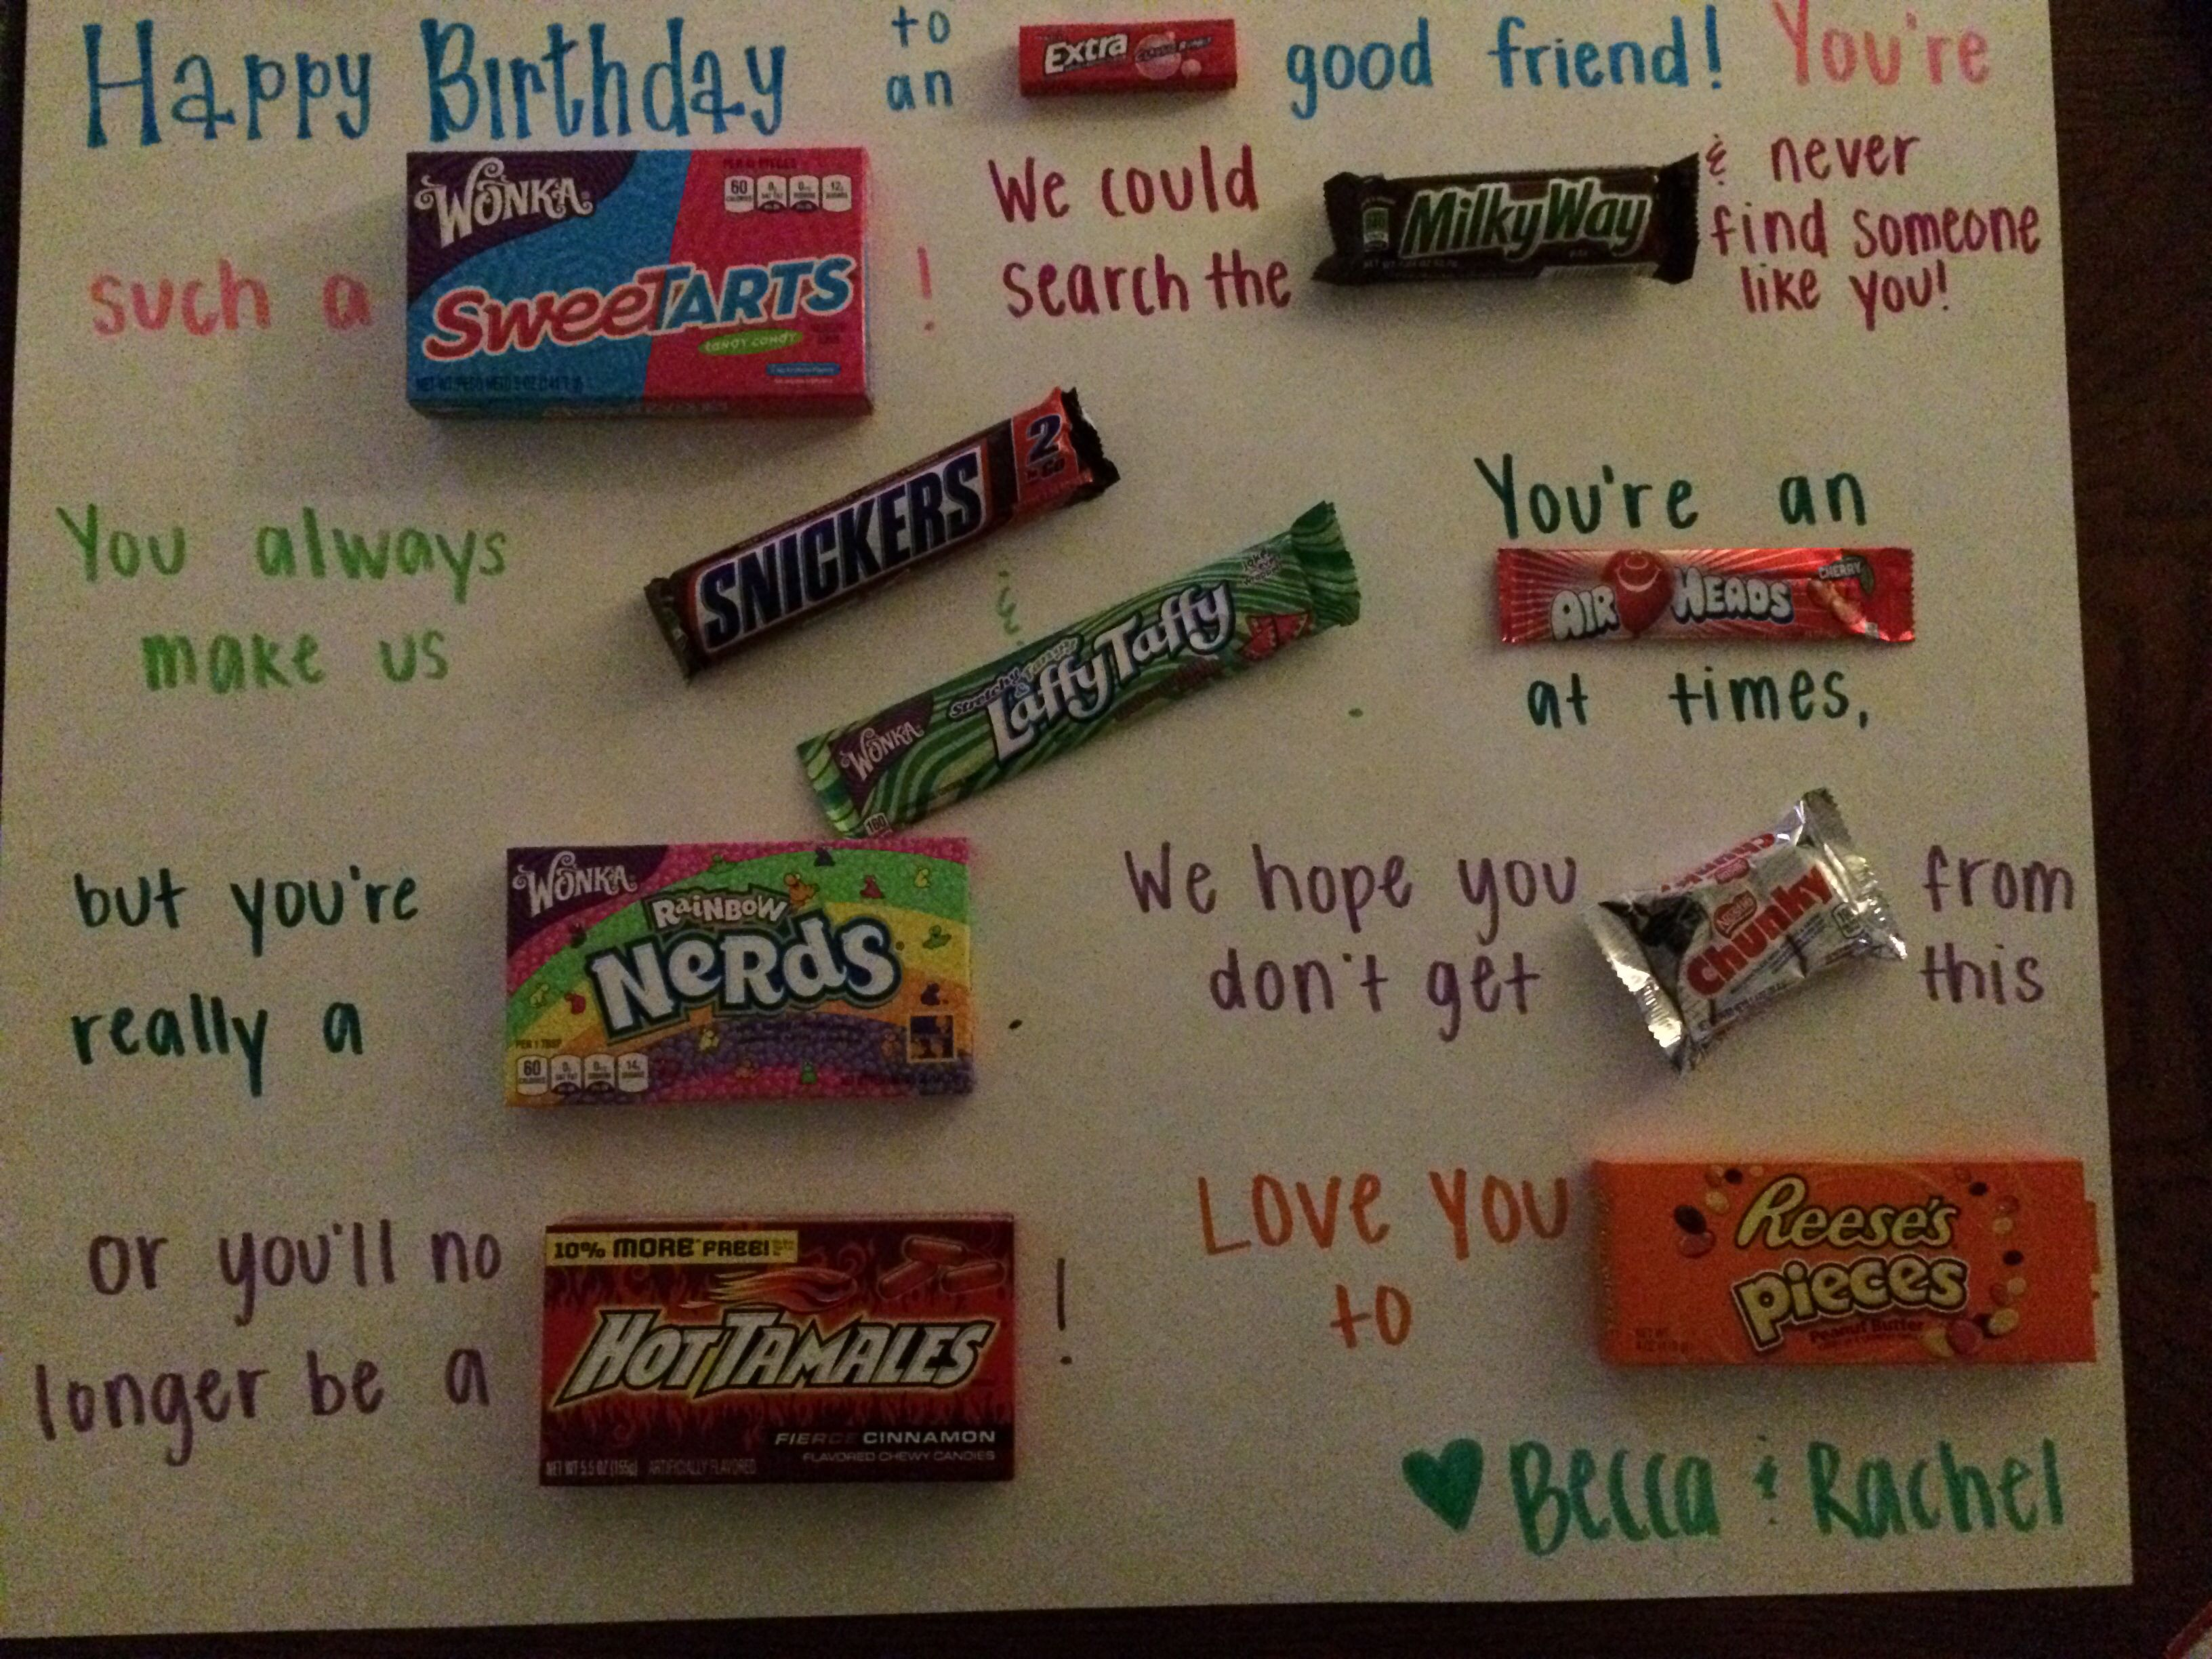 birthday candy poster for best friend ; 6a31a3027a974008bf9cb7bd1495e9cc